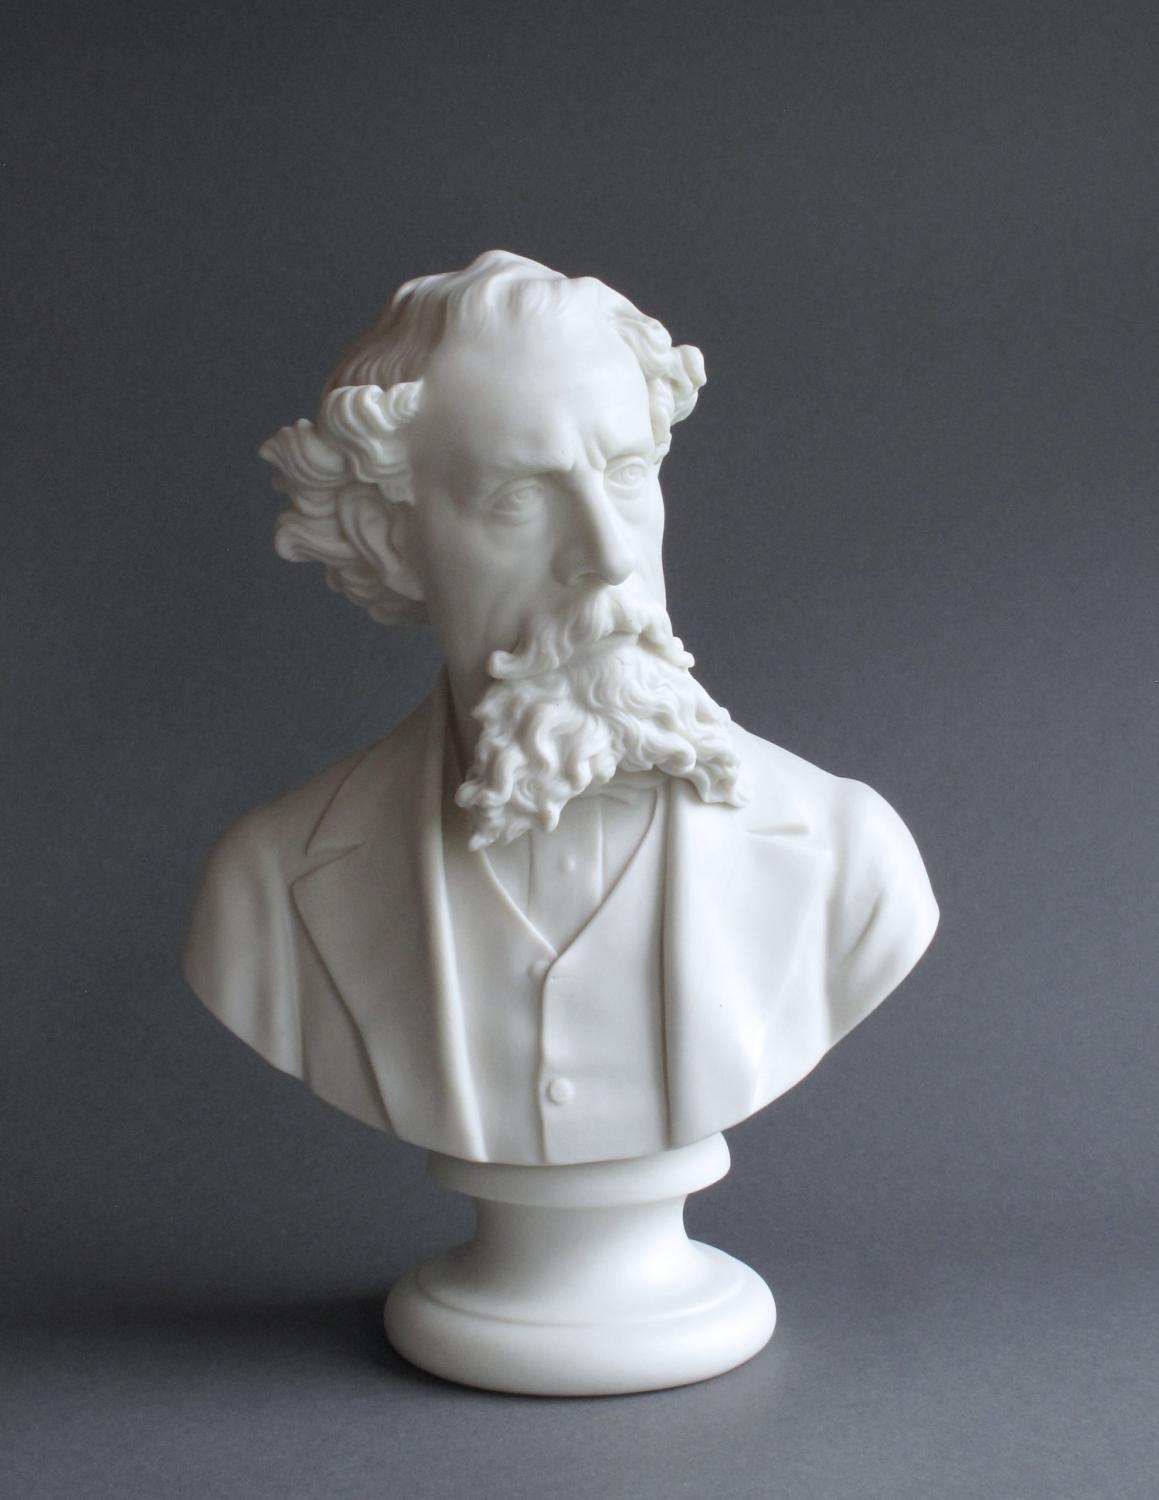 A large Parian bust of Charles Dickens